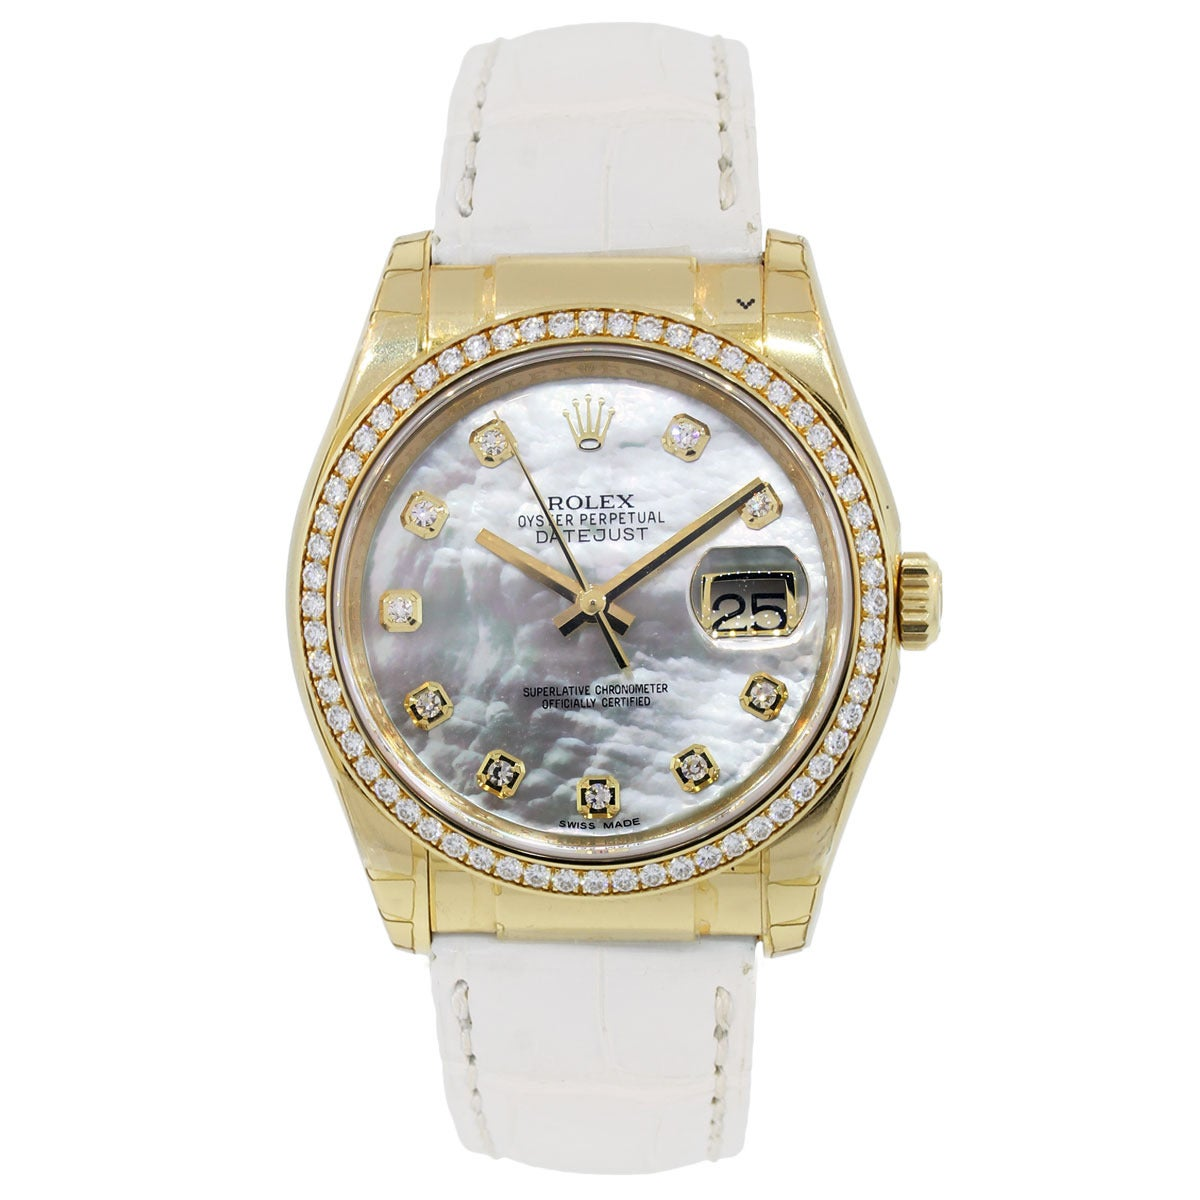 Rolex Yellow Gold Datejust Mother of Pearl Diamond Dial Wristwatch Ref 116188 2